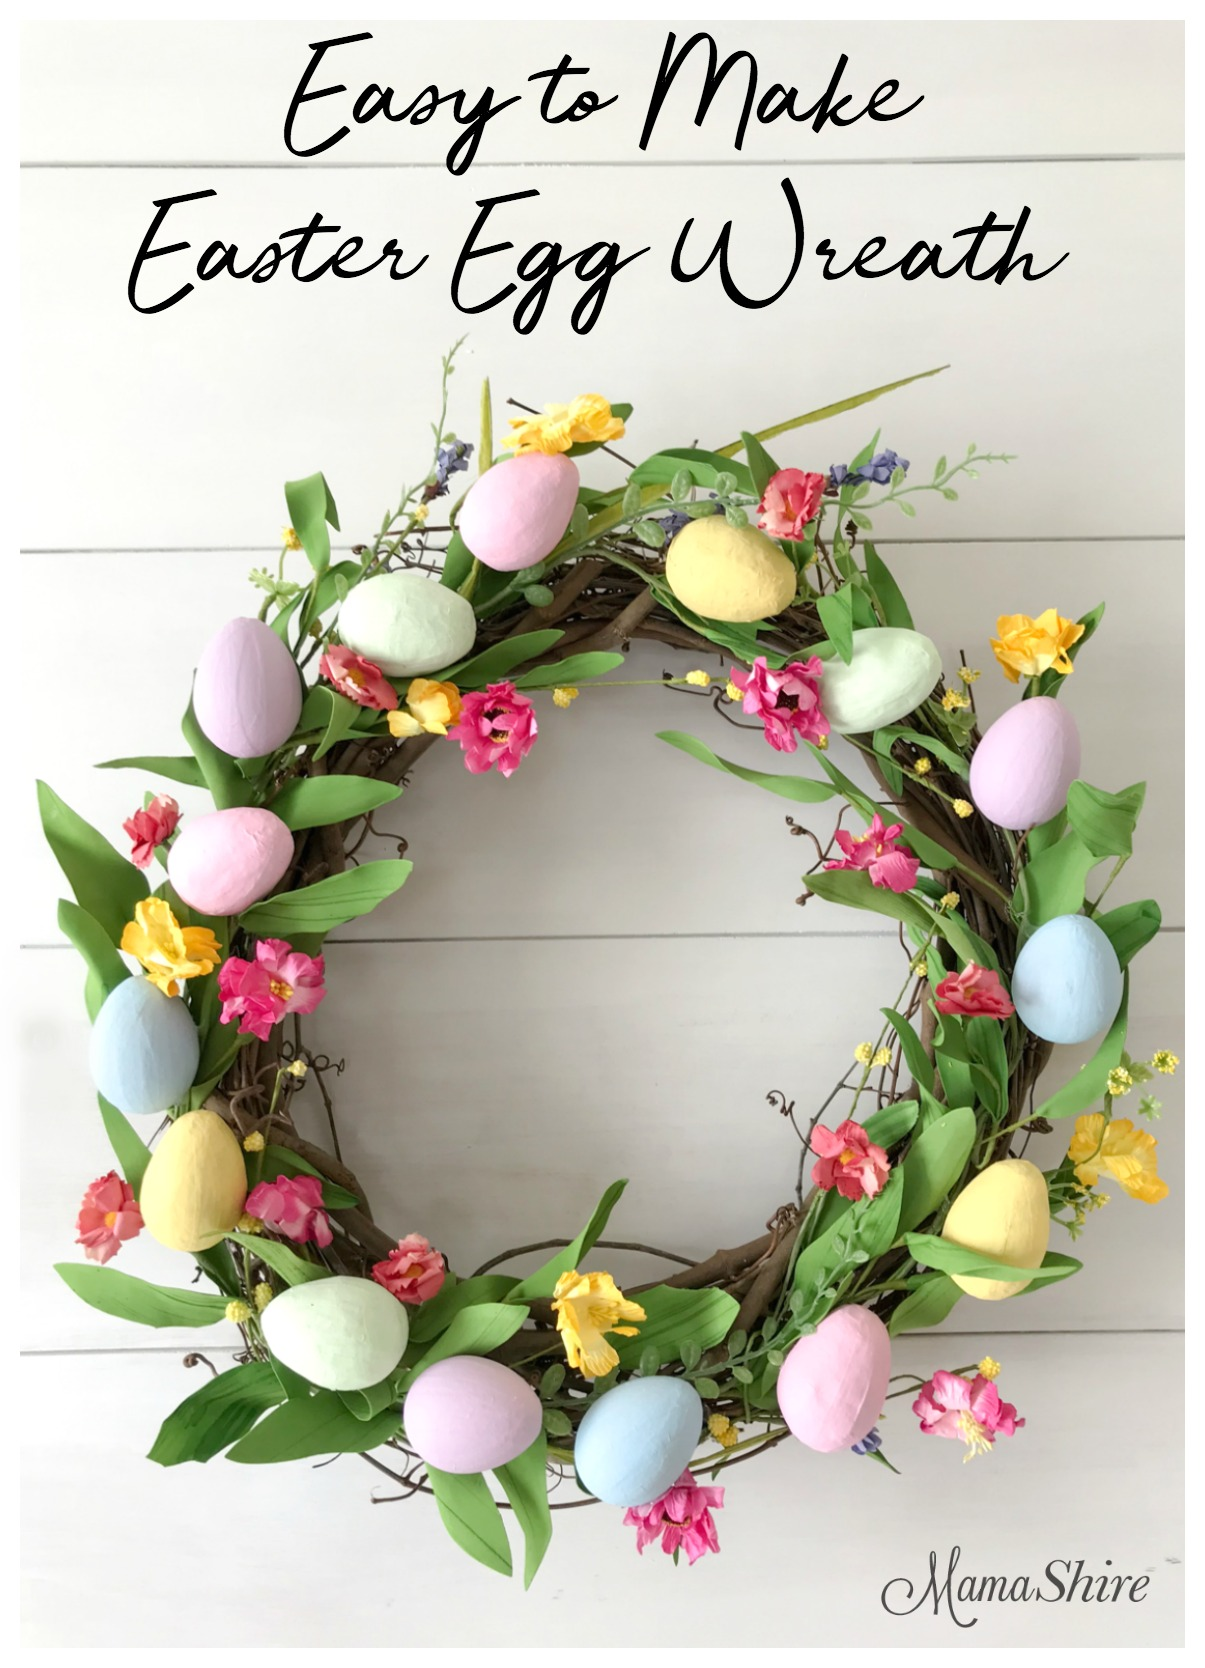 An adorable homemade Easter Egg Wreath